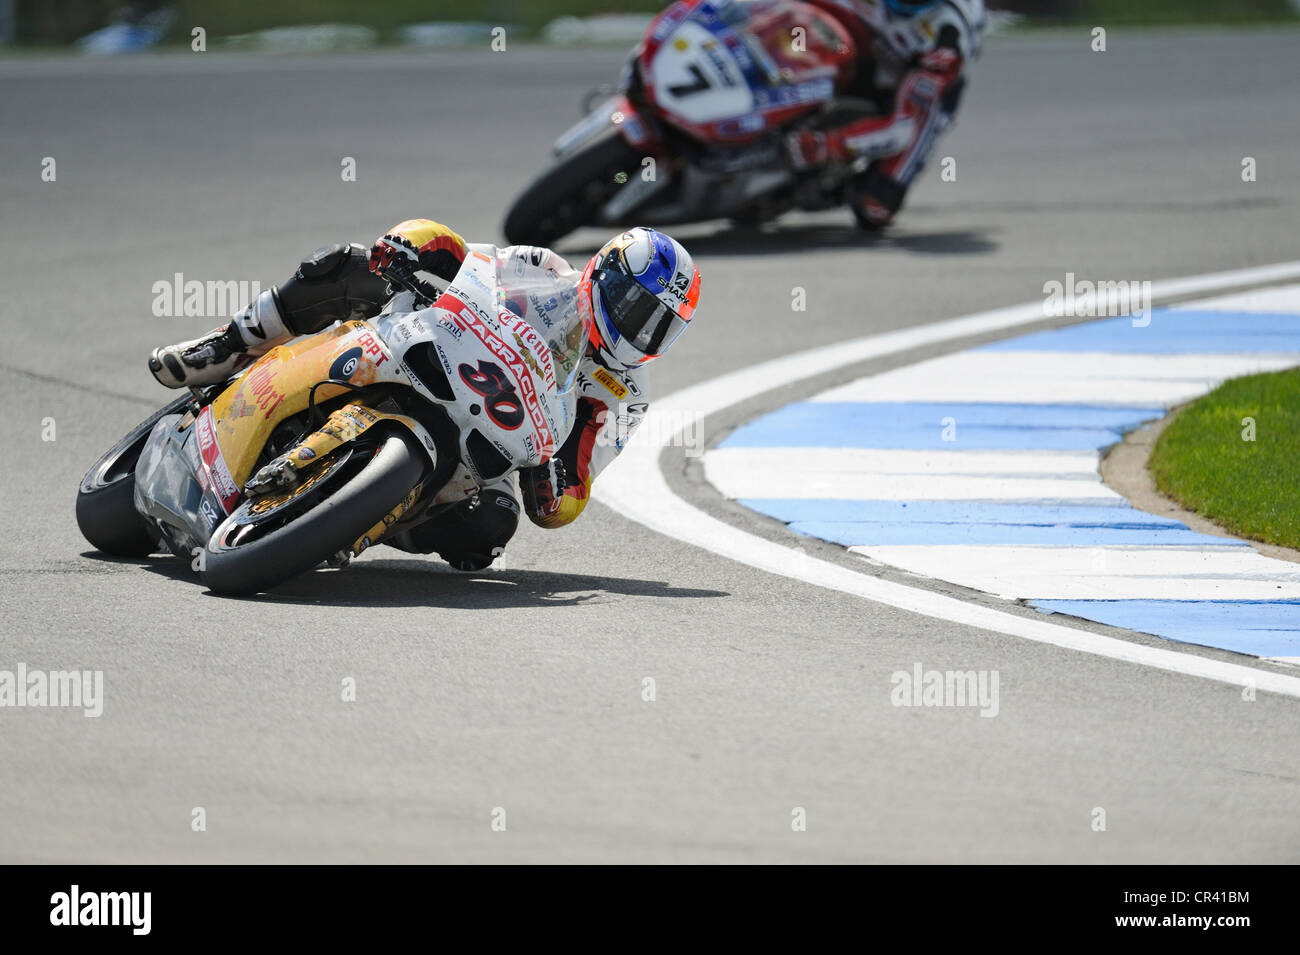 sylvan guintoli on the ducati, WSBK 2012 - Stock Image